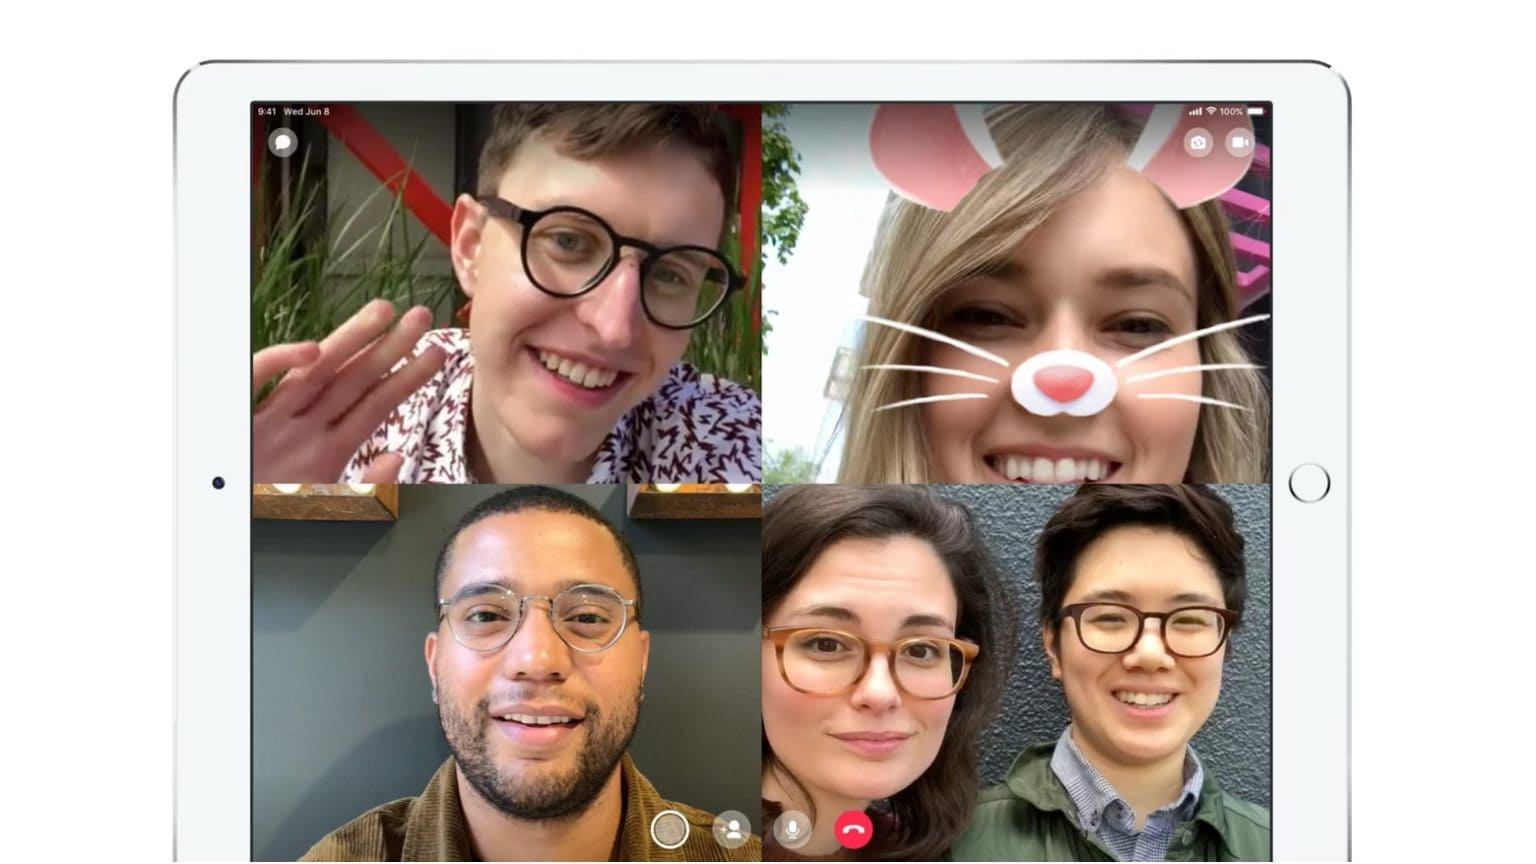 Facebook Messenger video chat includes augmented reality.